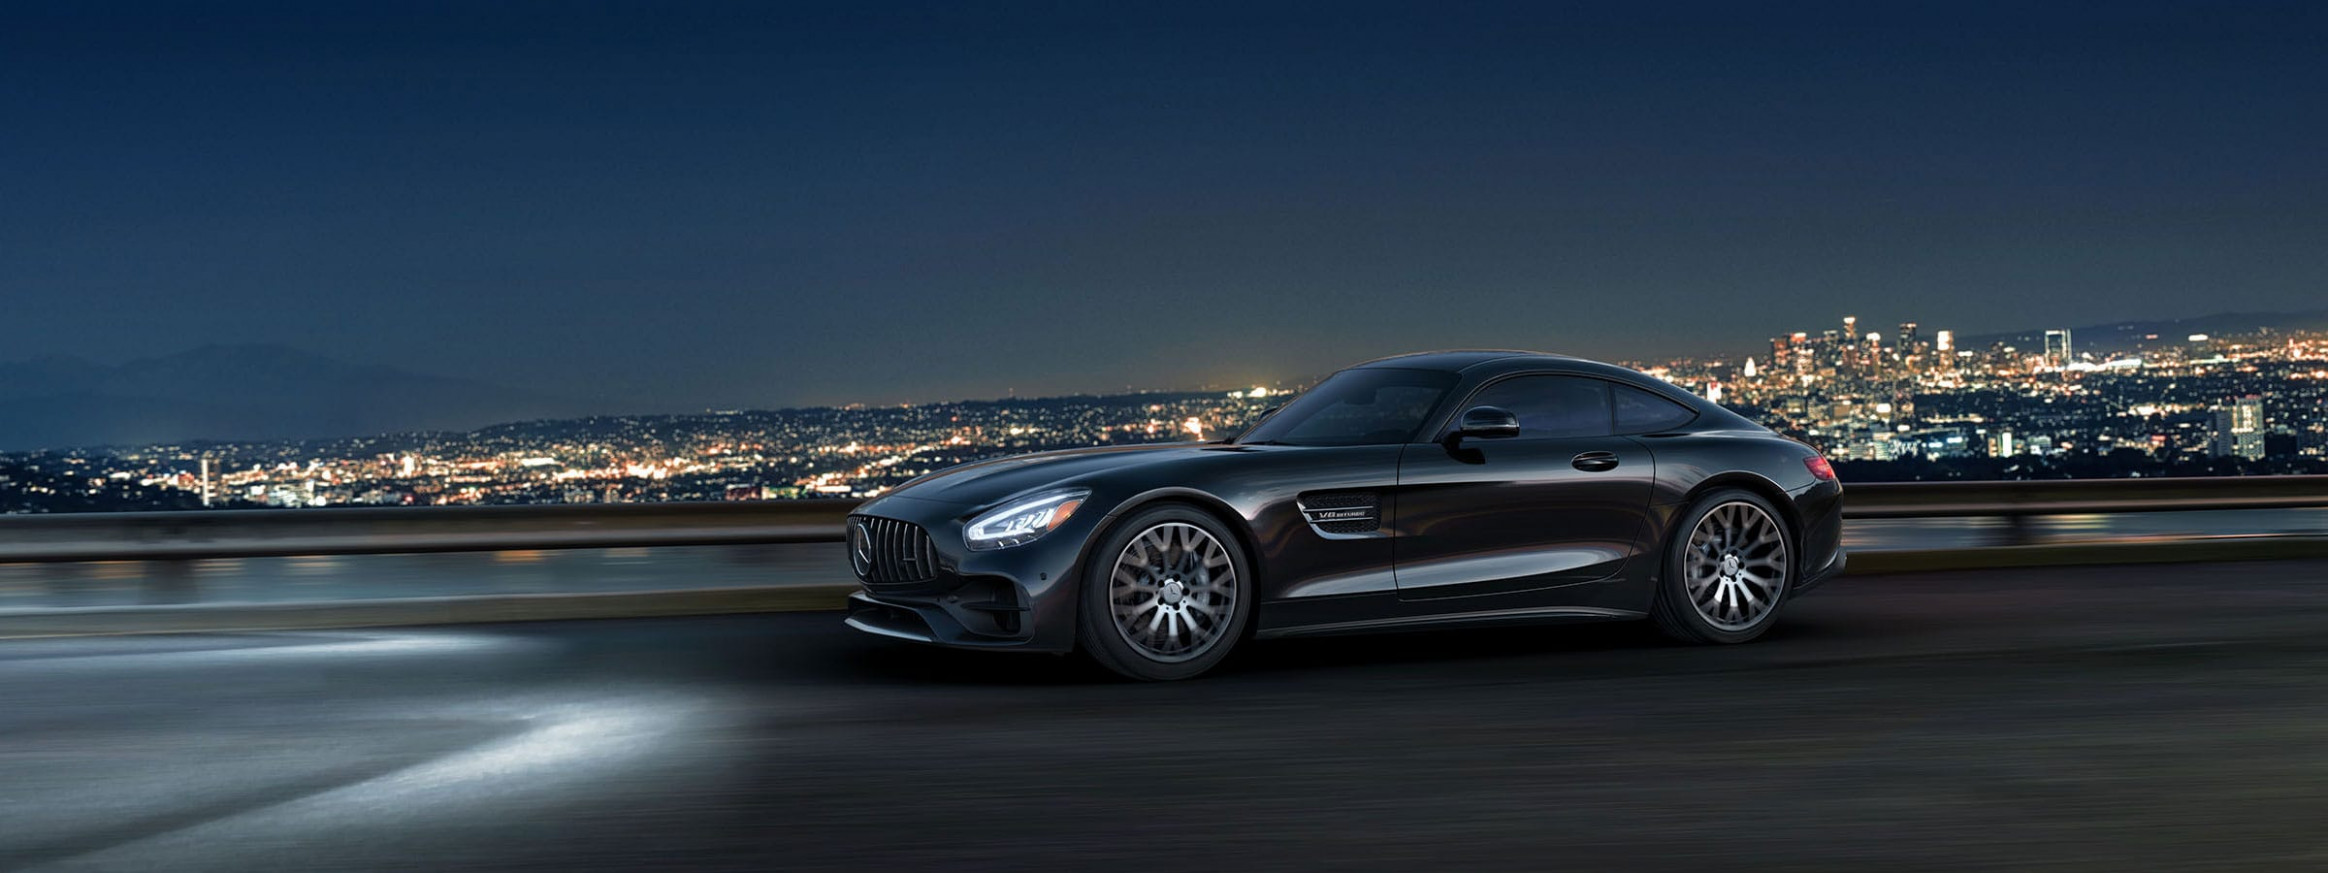 8 Mercedes-AMG High Performance GT C Coupe Sports Car